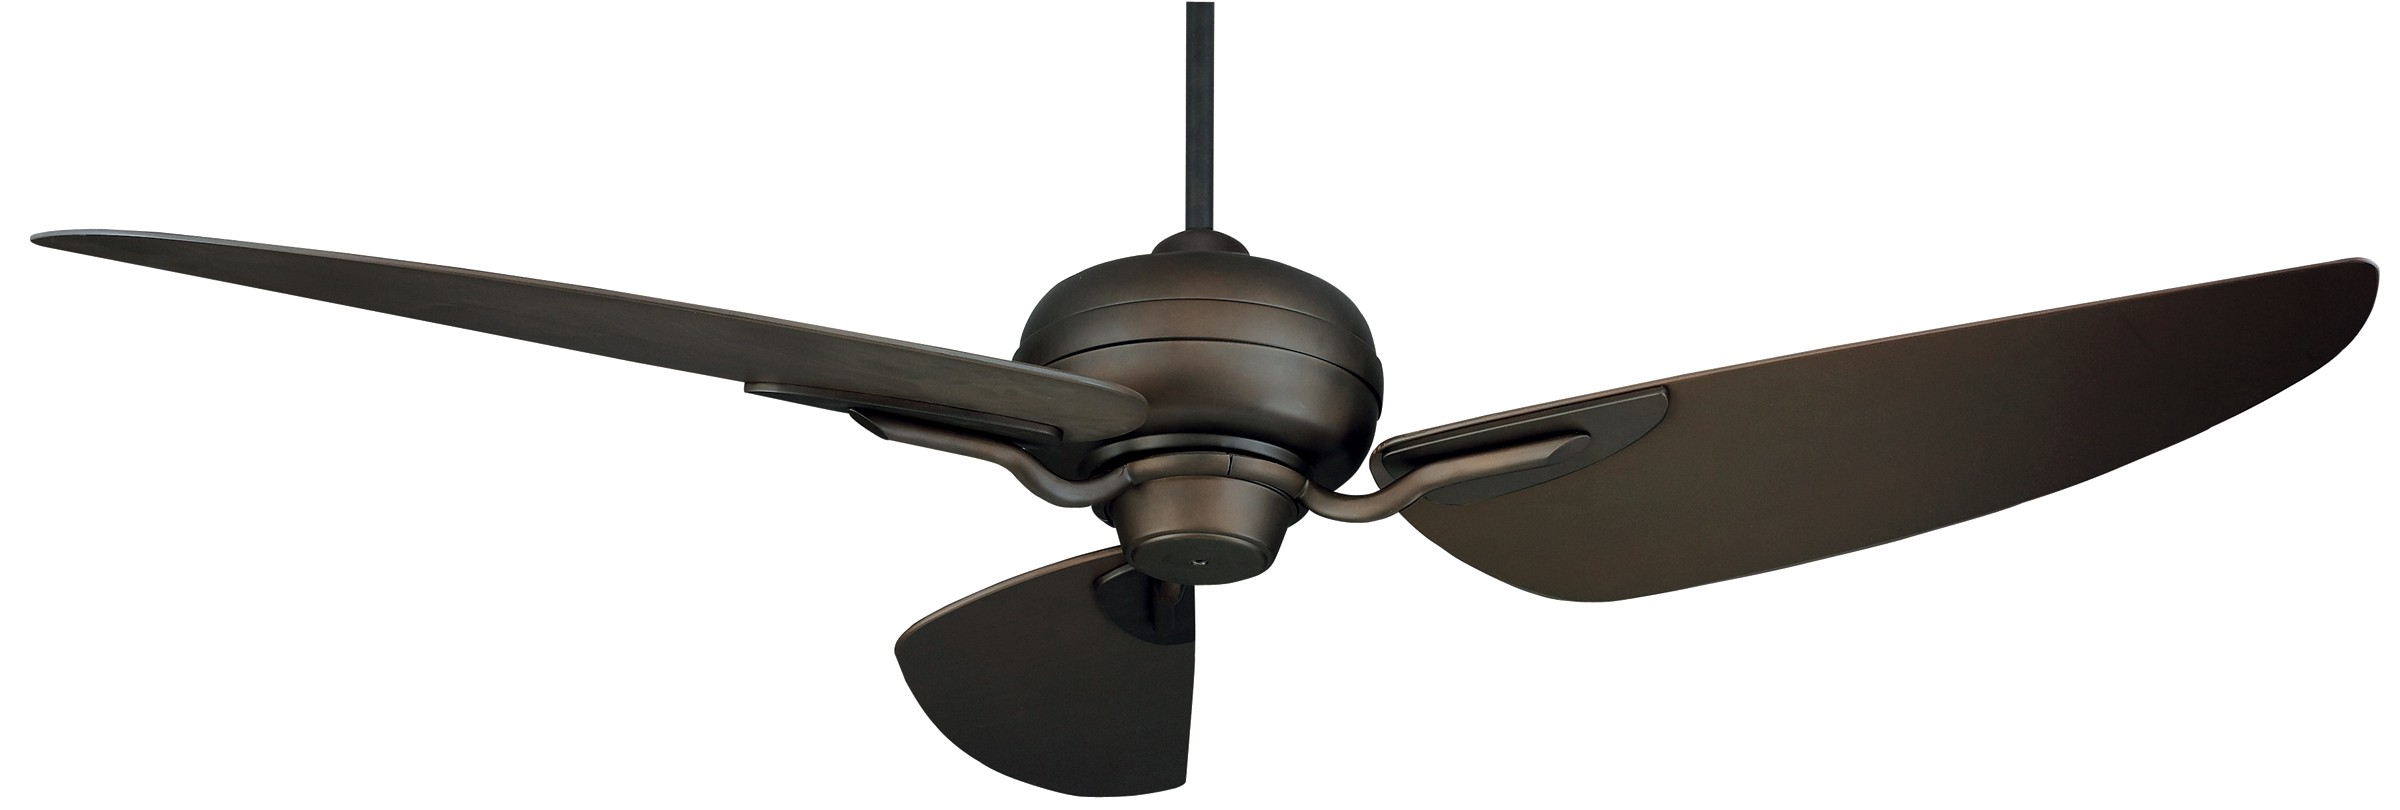 Outdoor Modern Fans Orient Pedestal Fan Price In Kerala 3g Outdoor Fans